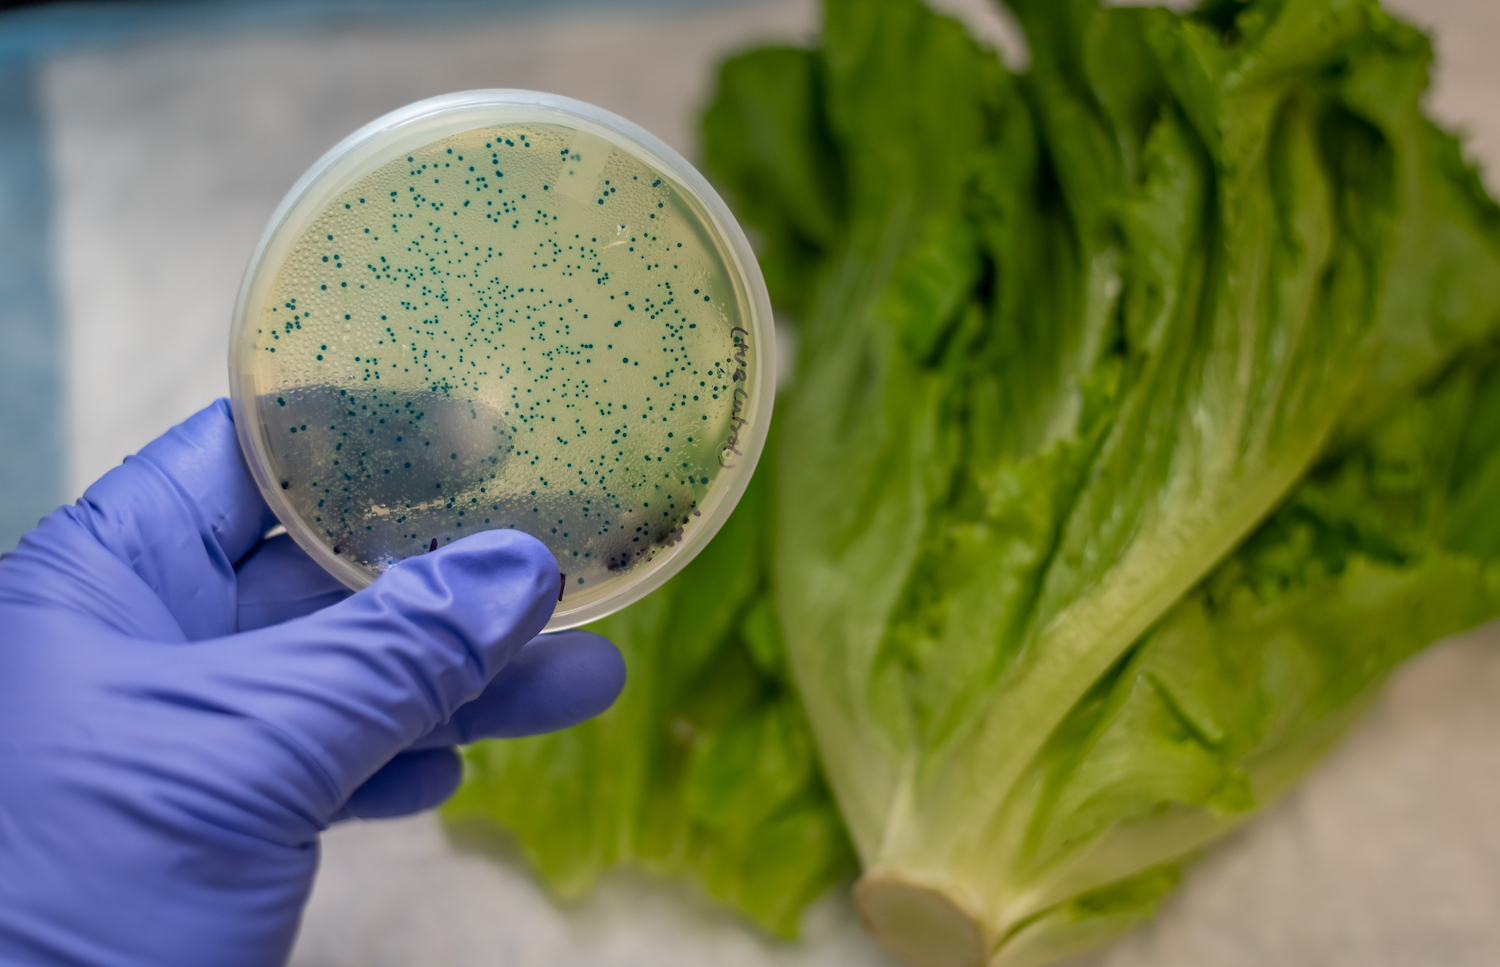 E coli contamination in romaine lettuce